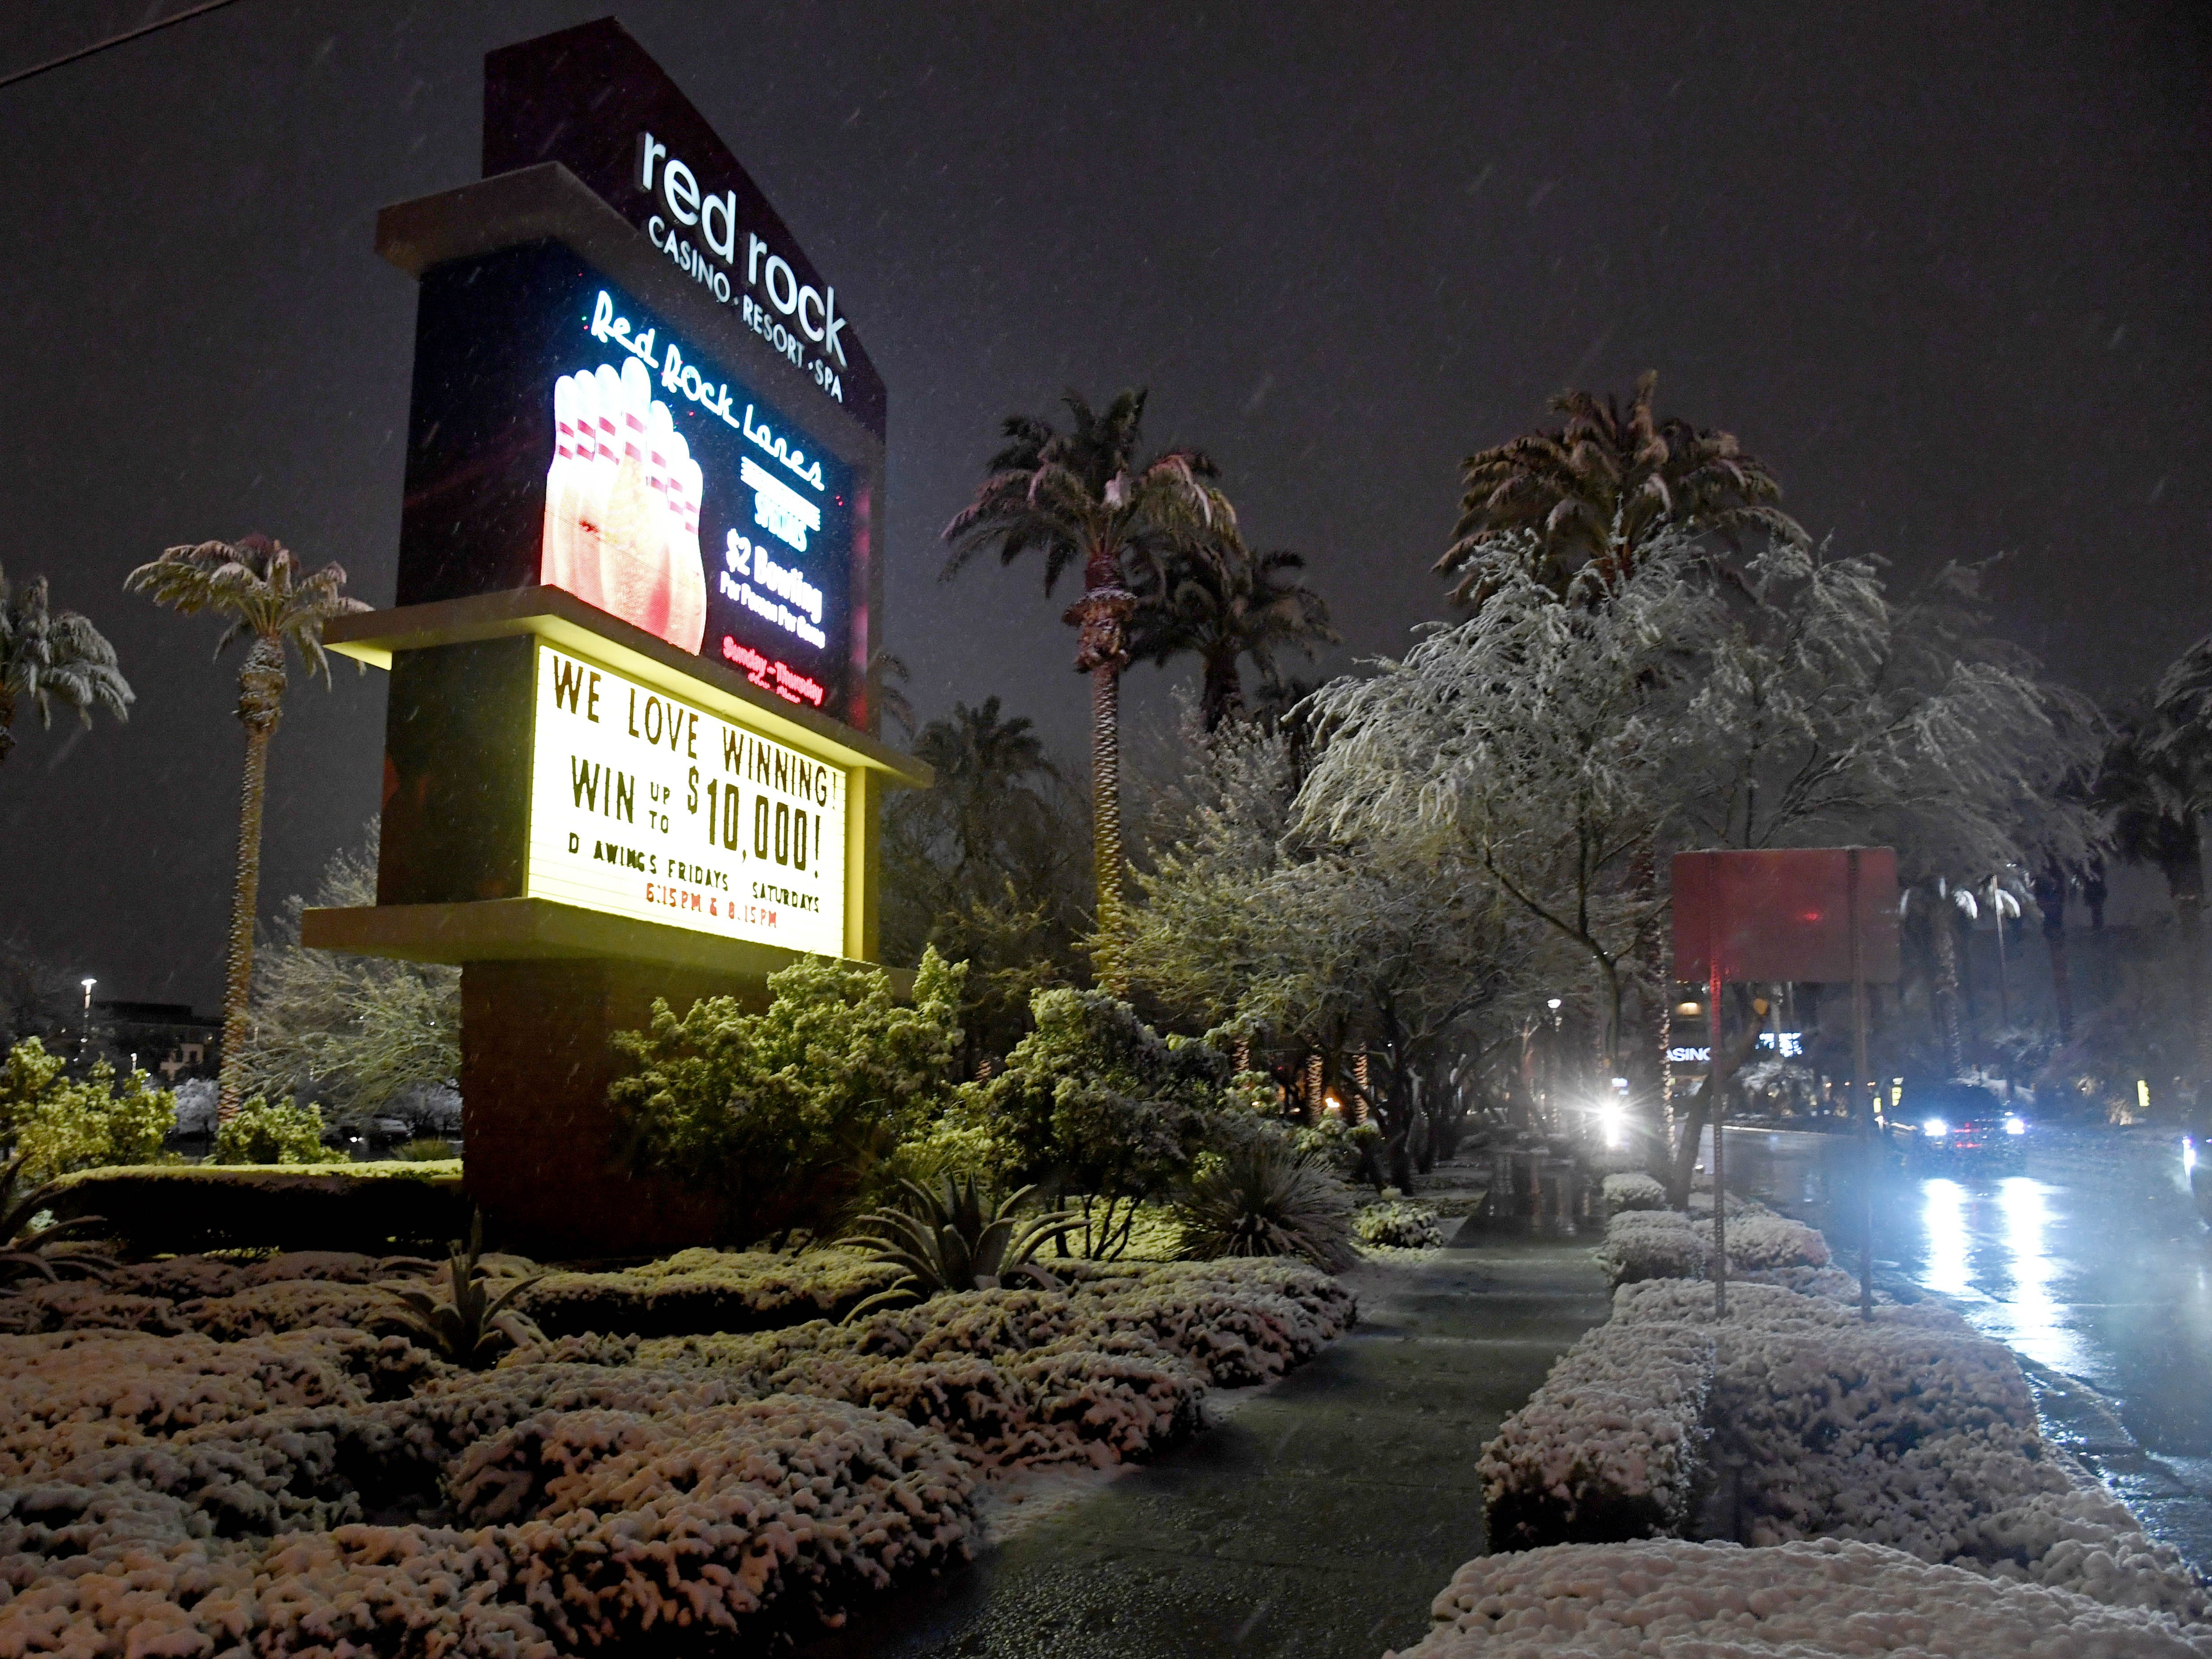 Snow falls outside the Red Rock Casino in Las Vegas during a winter storm on Feb. 20, 2019.